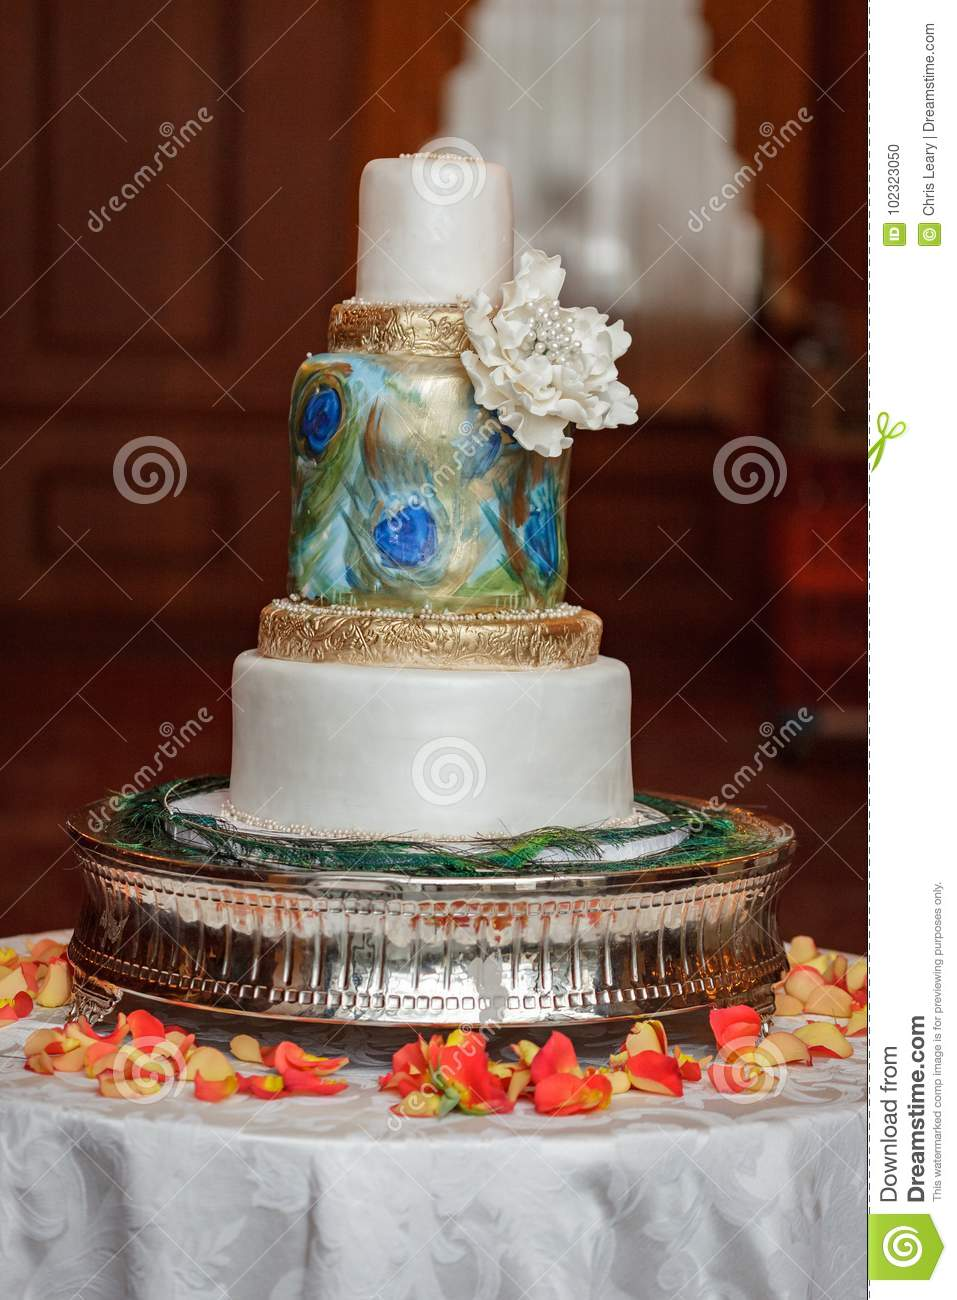 Peacock Wedding Cake.Peacock Wedding Cake Stock Photo Image Of Peacock